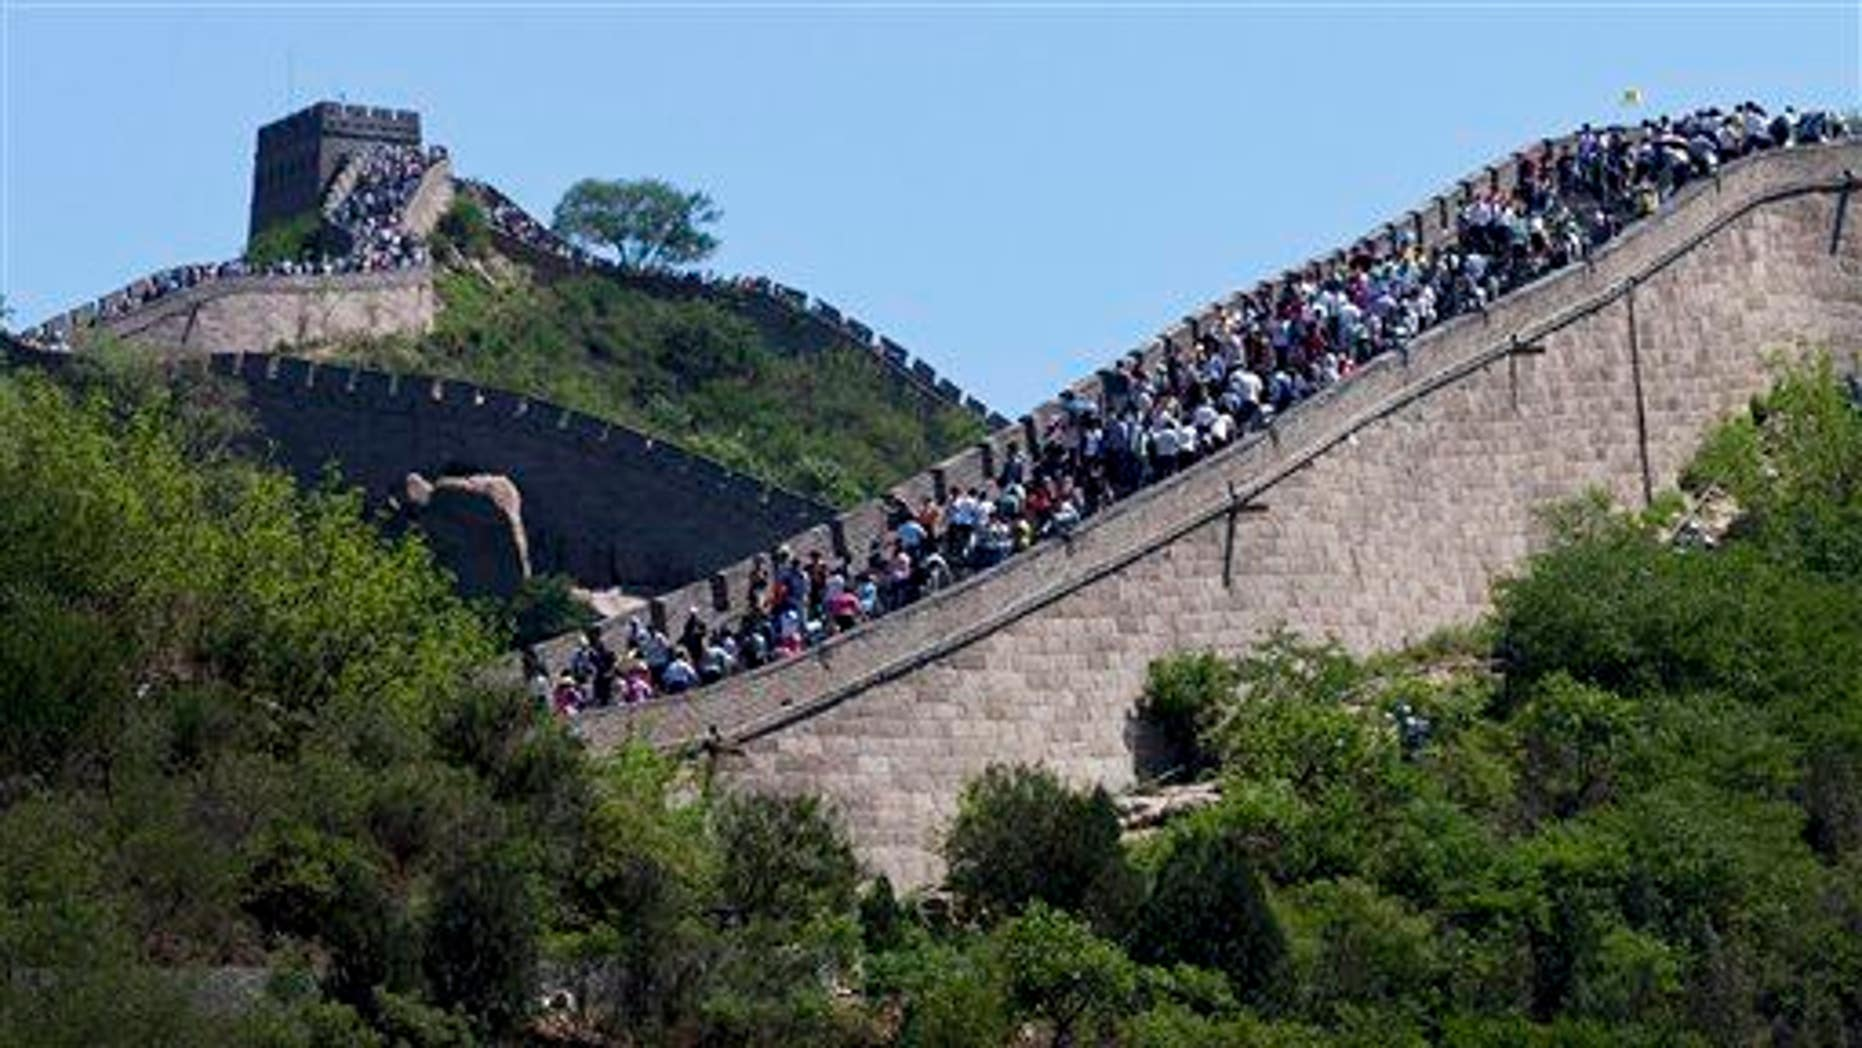 Tourists go sightseeing on the Great Wall of China during a weekend at Badaling, north of Beijing, June 2, 2012.